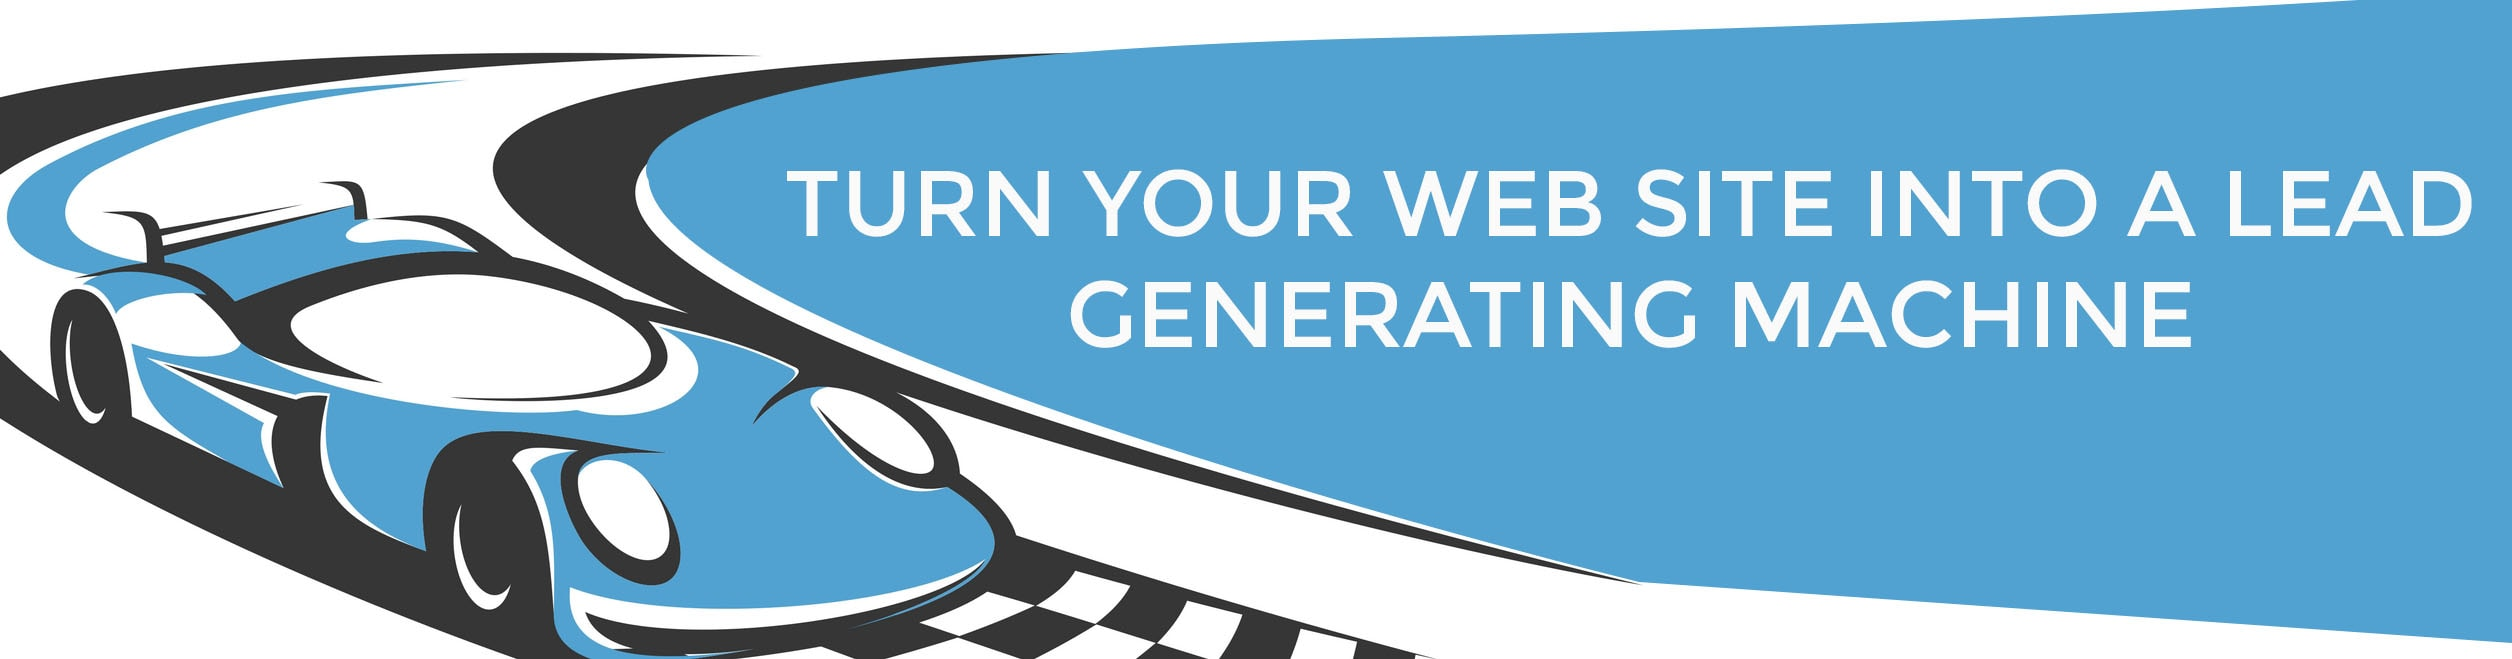 Turn your website in a lead generating machine